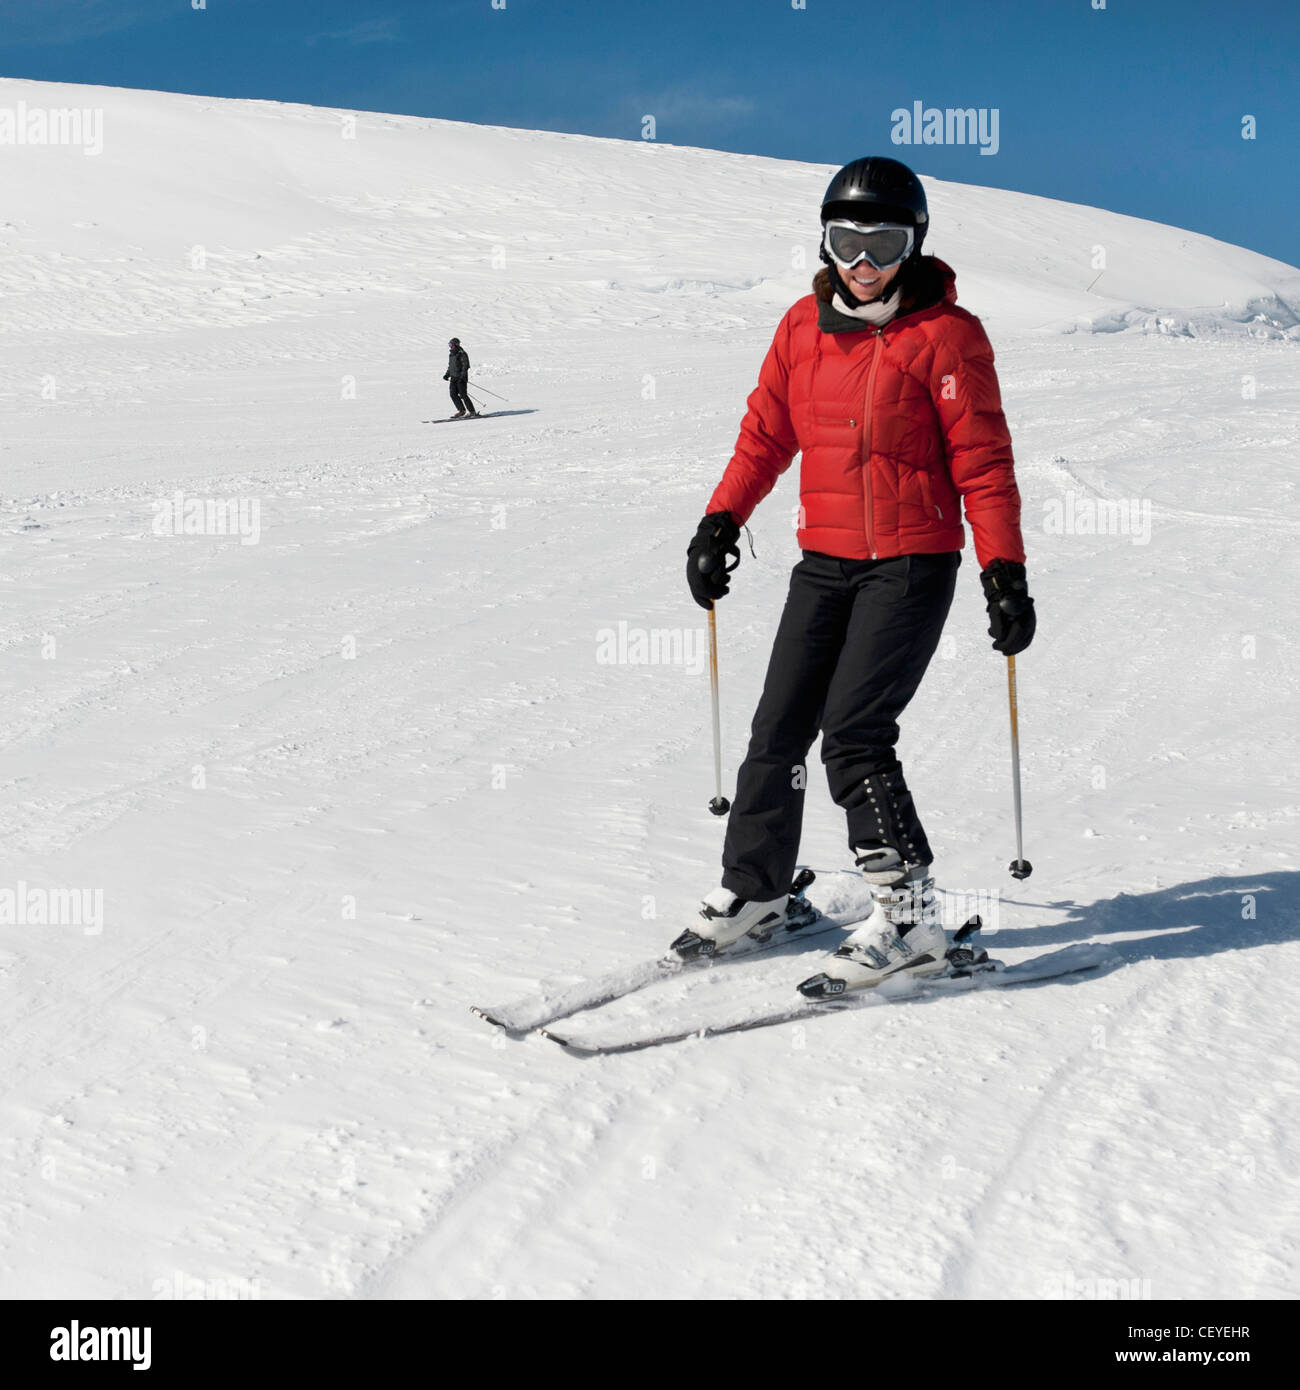 a skier making their way down a hill; whistler british columbia canada - Stock Image